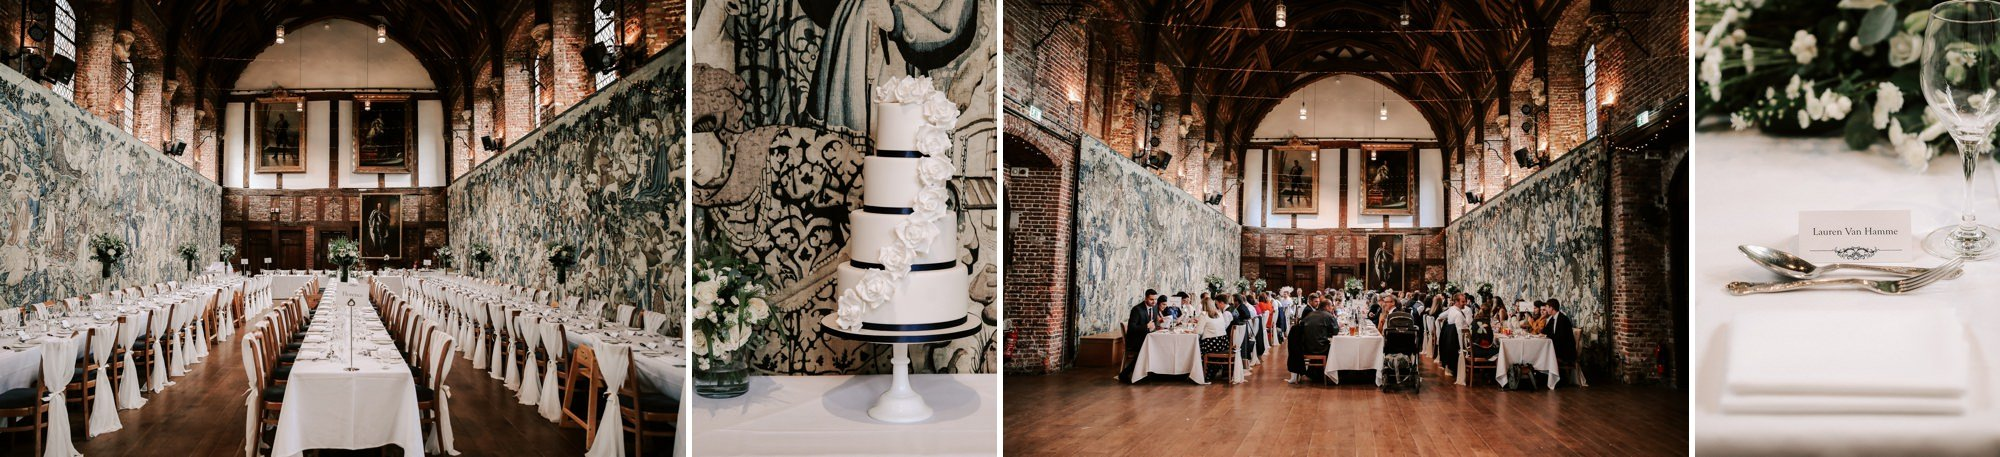 Autumn wedding Hatfield House